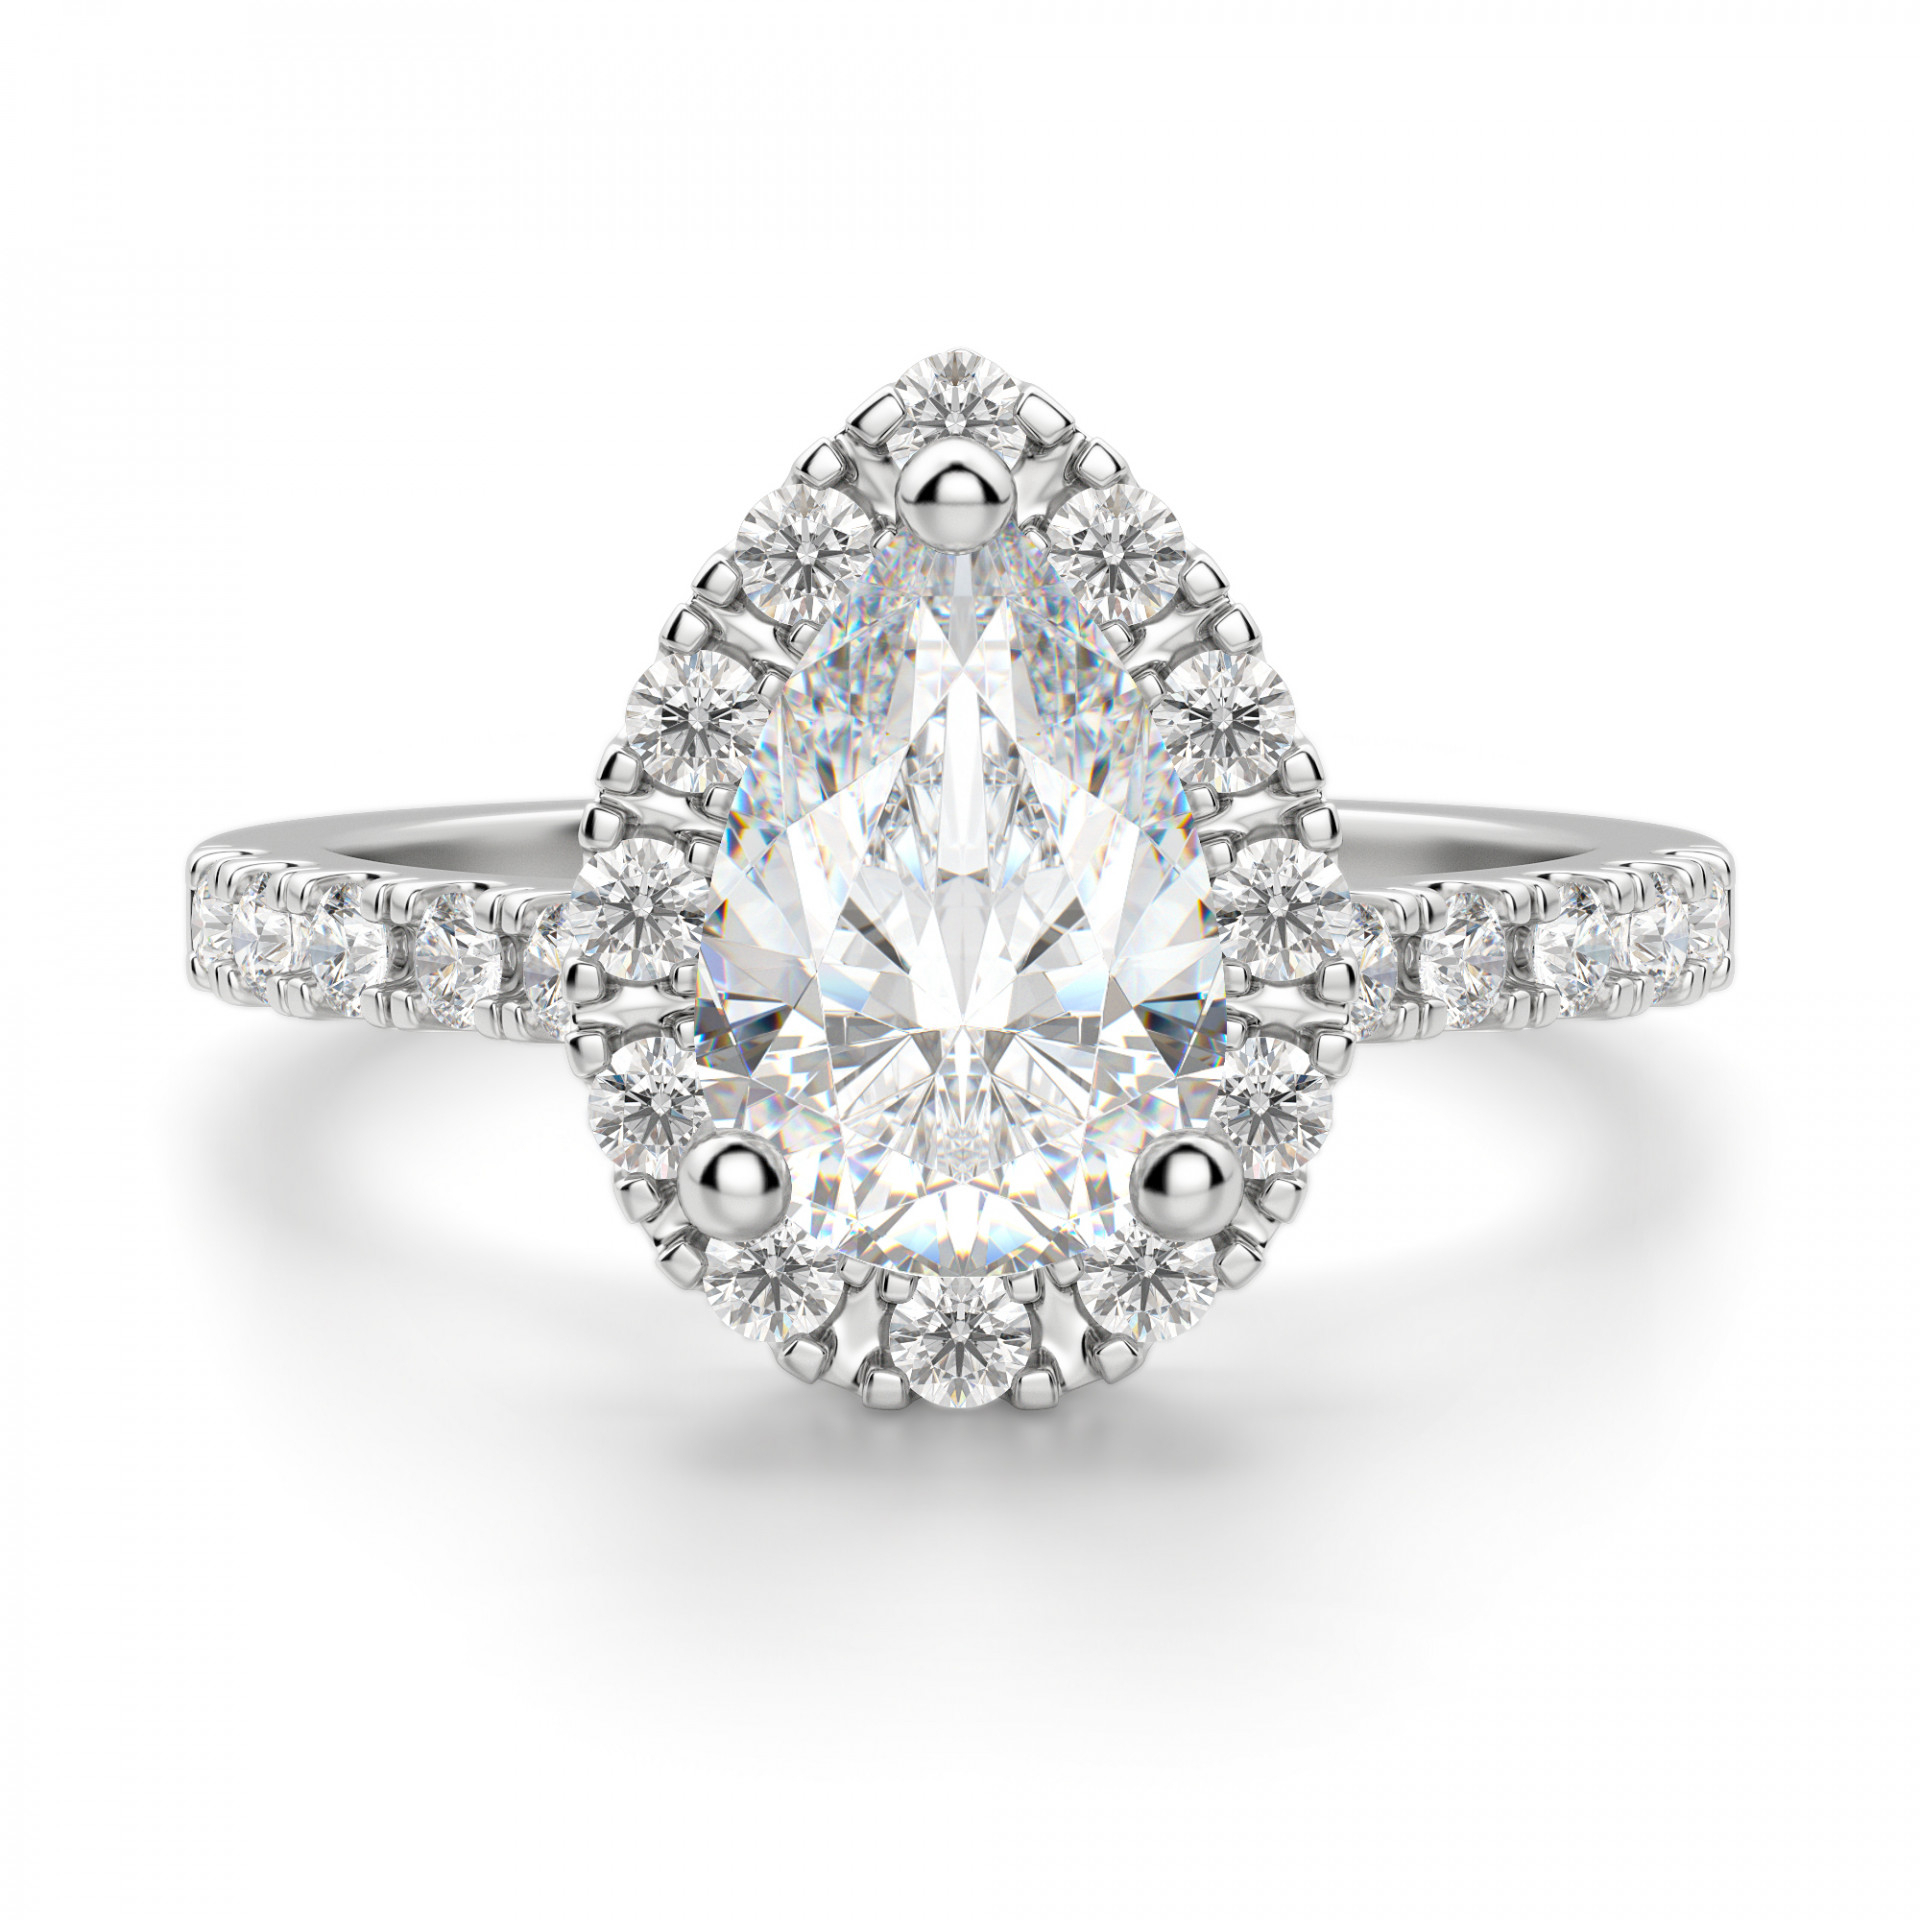 Madrid Accented Pear Cut Engagement Ring Intended For Pear Shaped Engagement Rings (View 3 of 25)